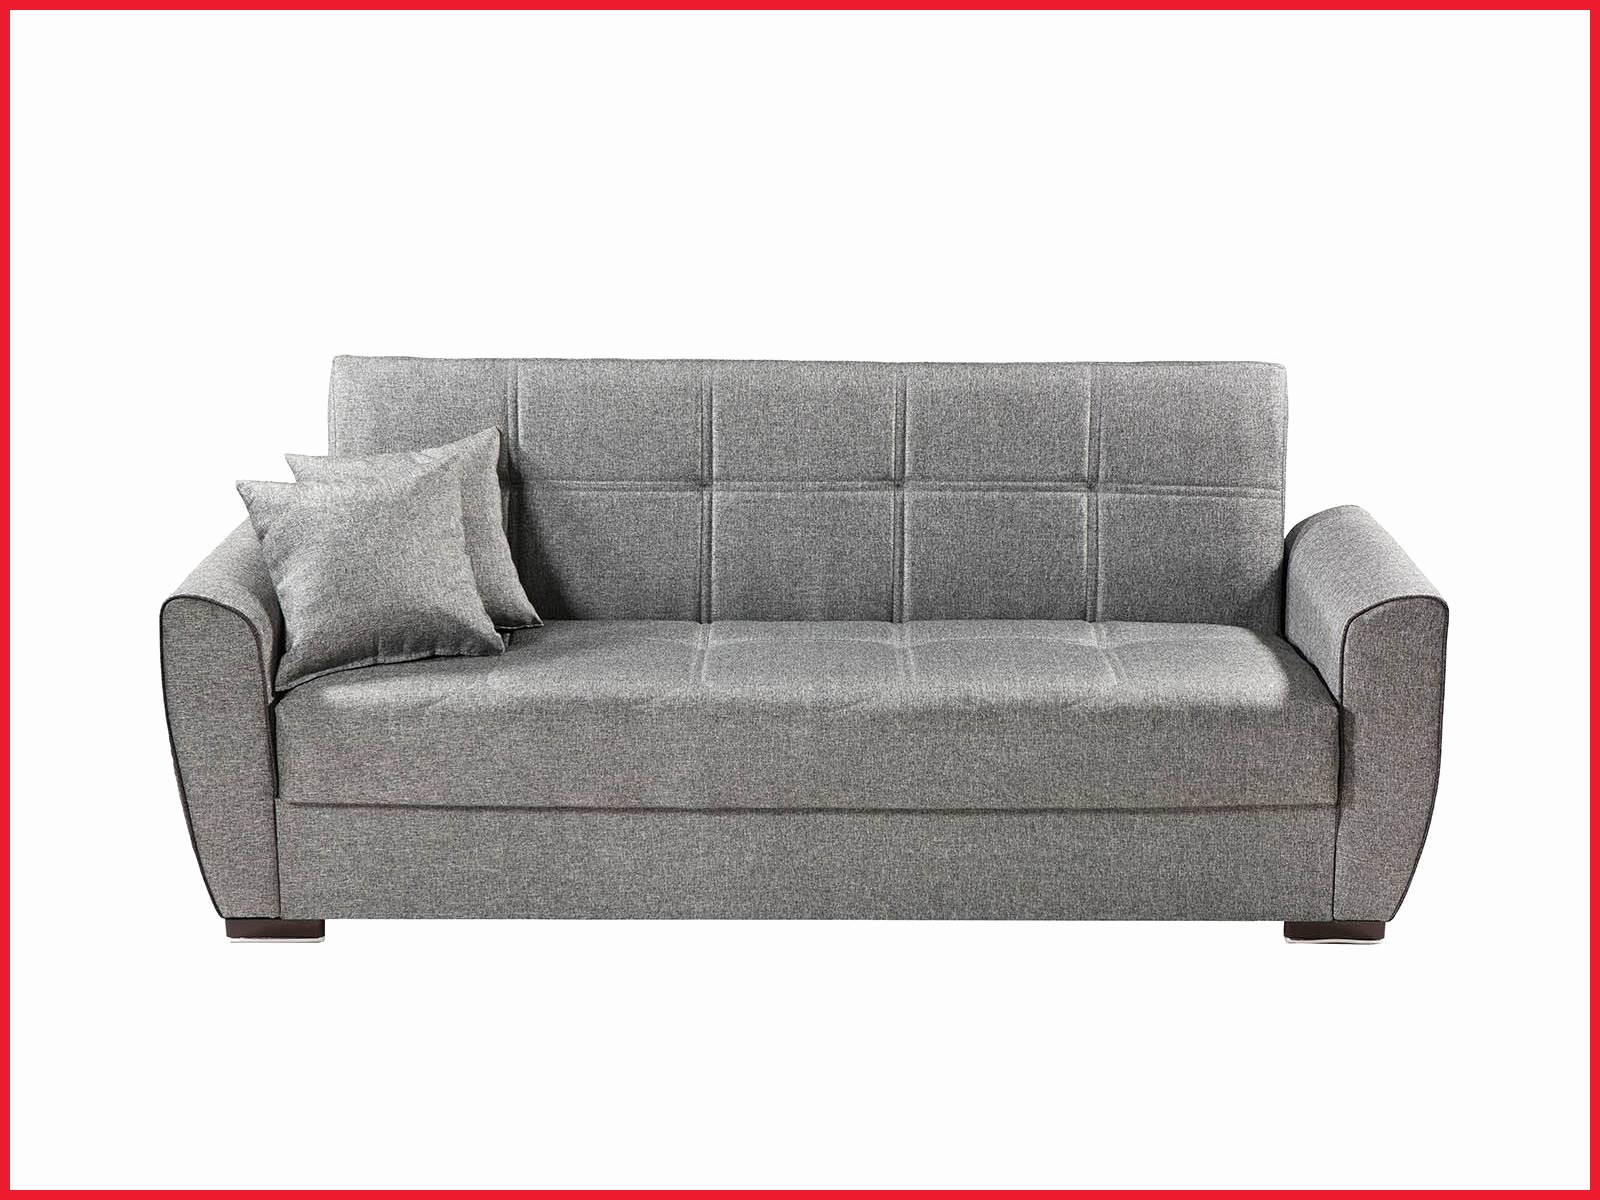 Sofa Cama Merkamueble X8d1 sofa Cama Merkamueble Best Vendo sofa Cama Ikea Barcelona